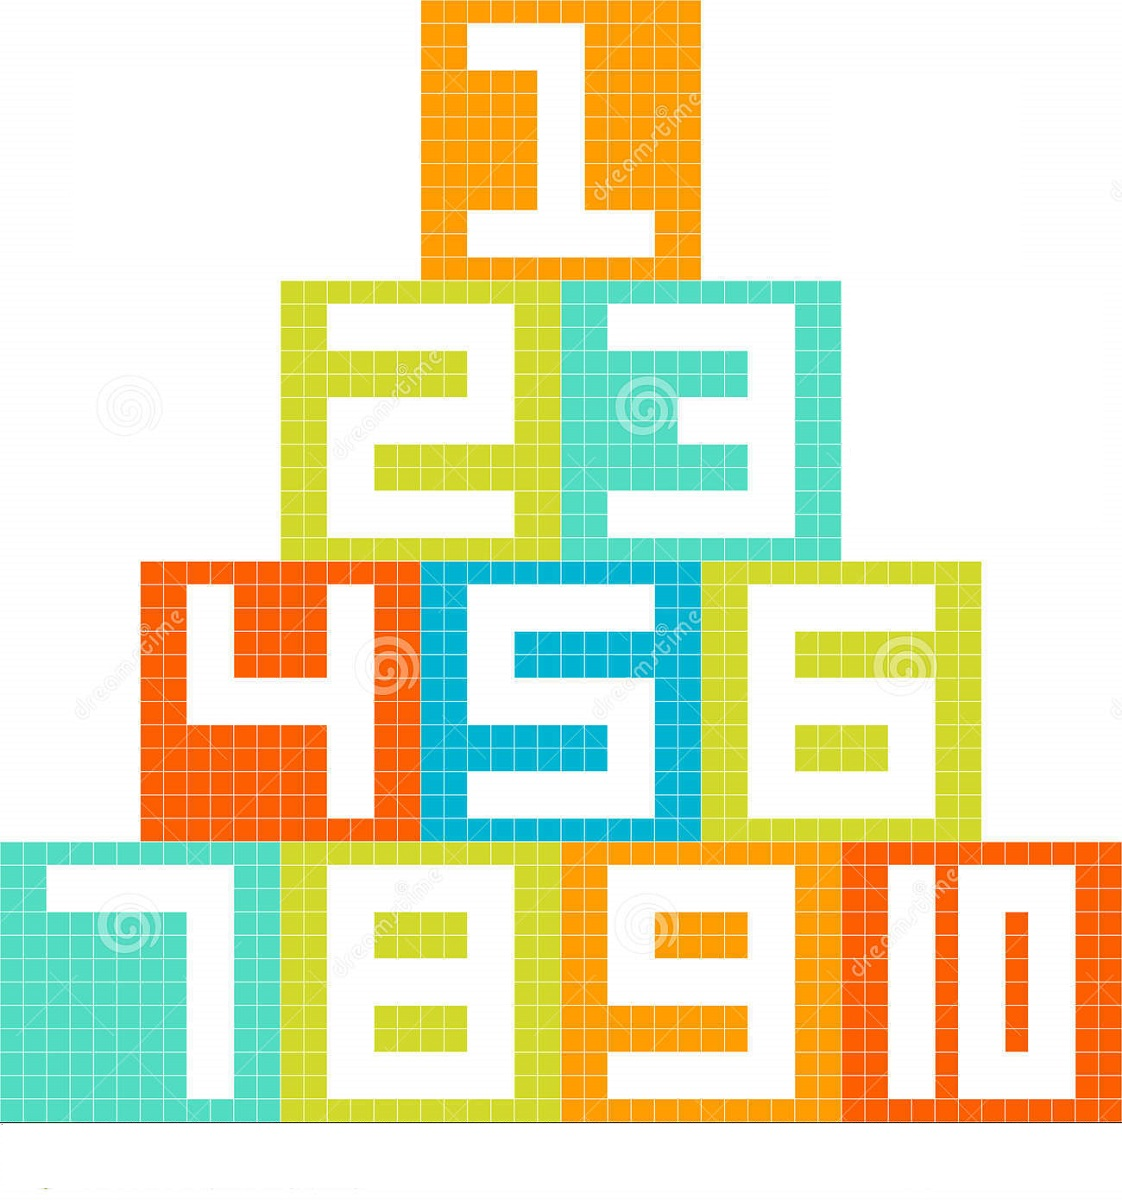 pictures-of-numbers-1-10-colorful